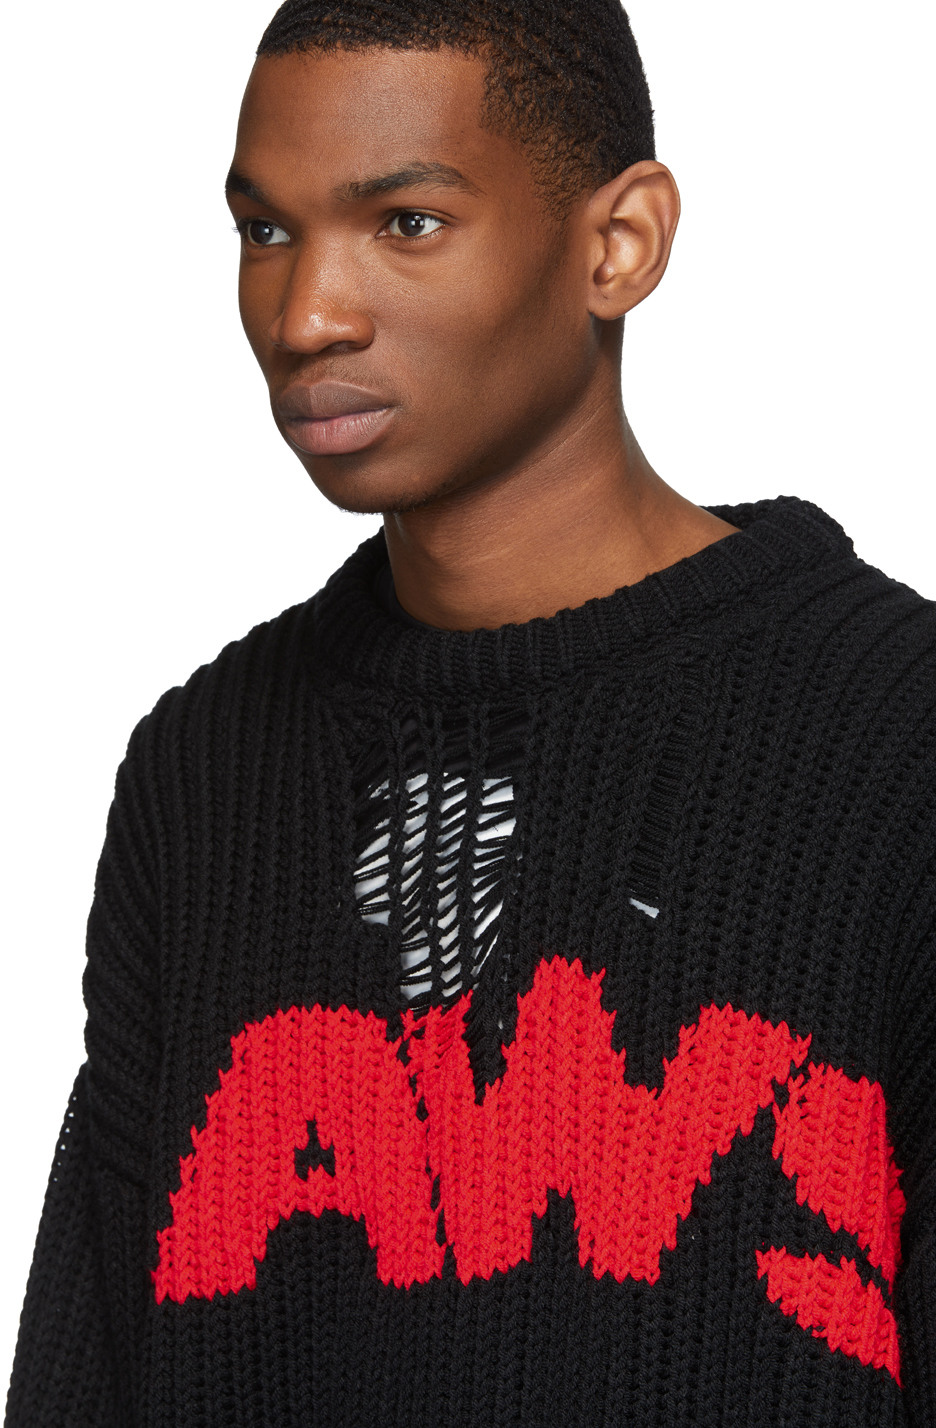 Calvin Klein 205w39nyc Sweaters Black 'Jaws' Sweater